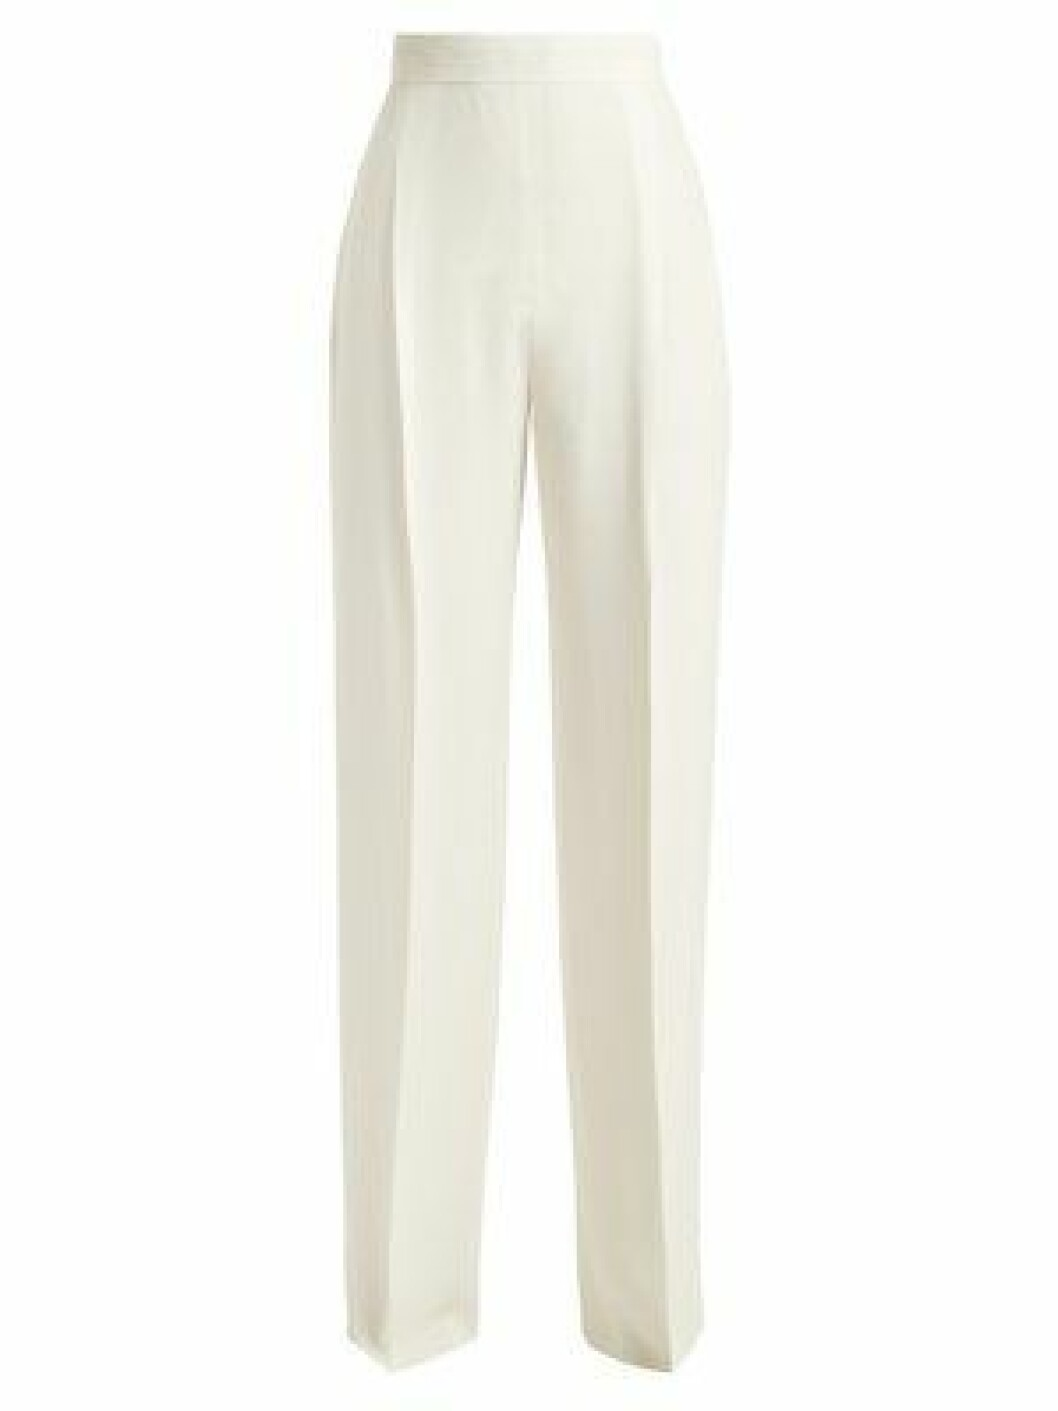 <strong>Bukse fra Max Mara |2635,-| https:</strong>//www.matchesfashion.com/intl/products/Max-Mara-Dixi-trousers-1211720